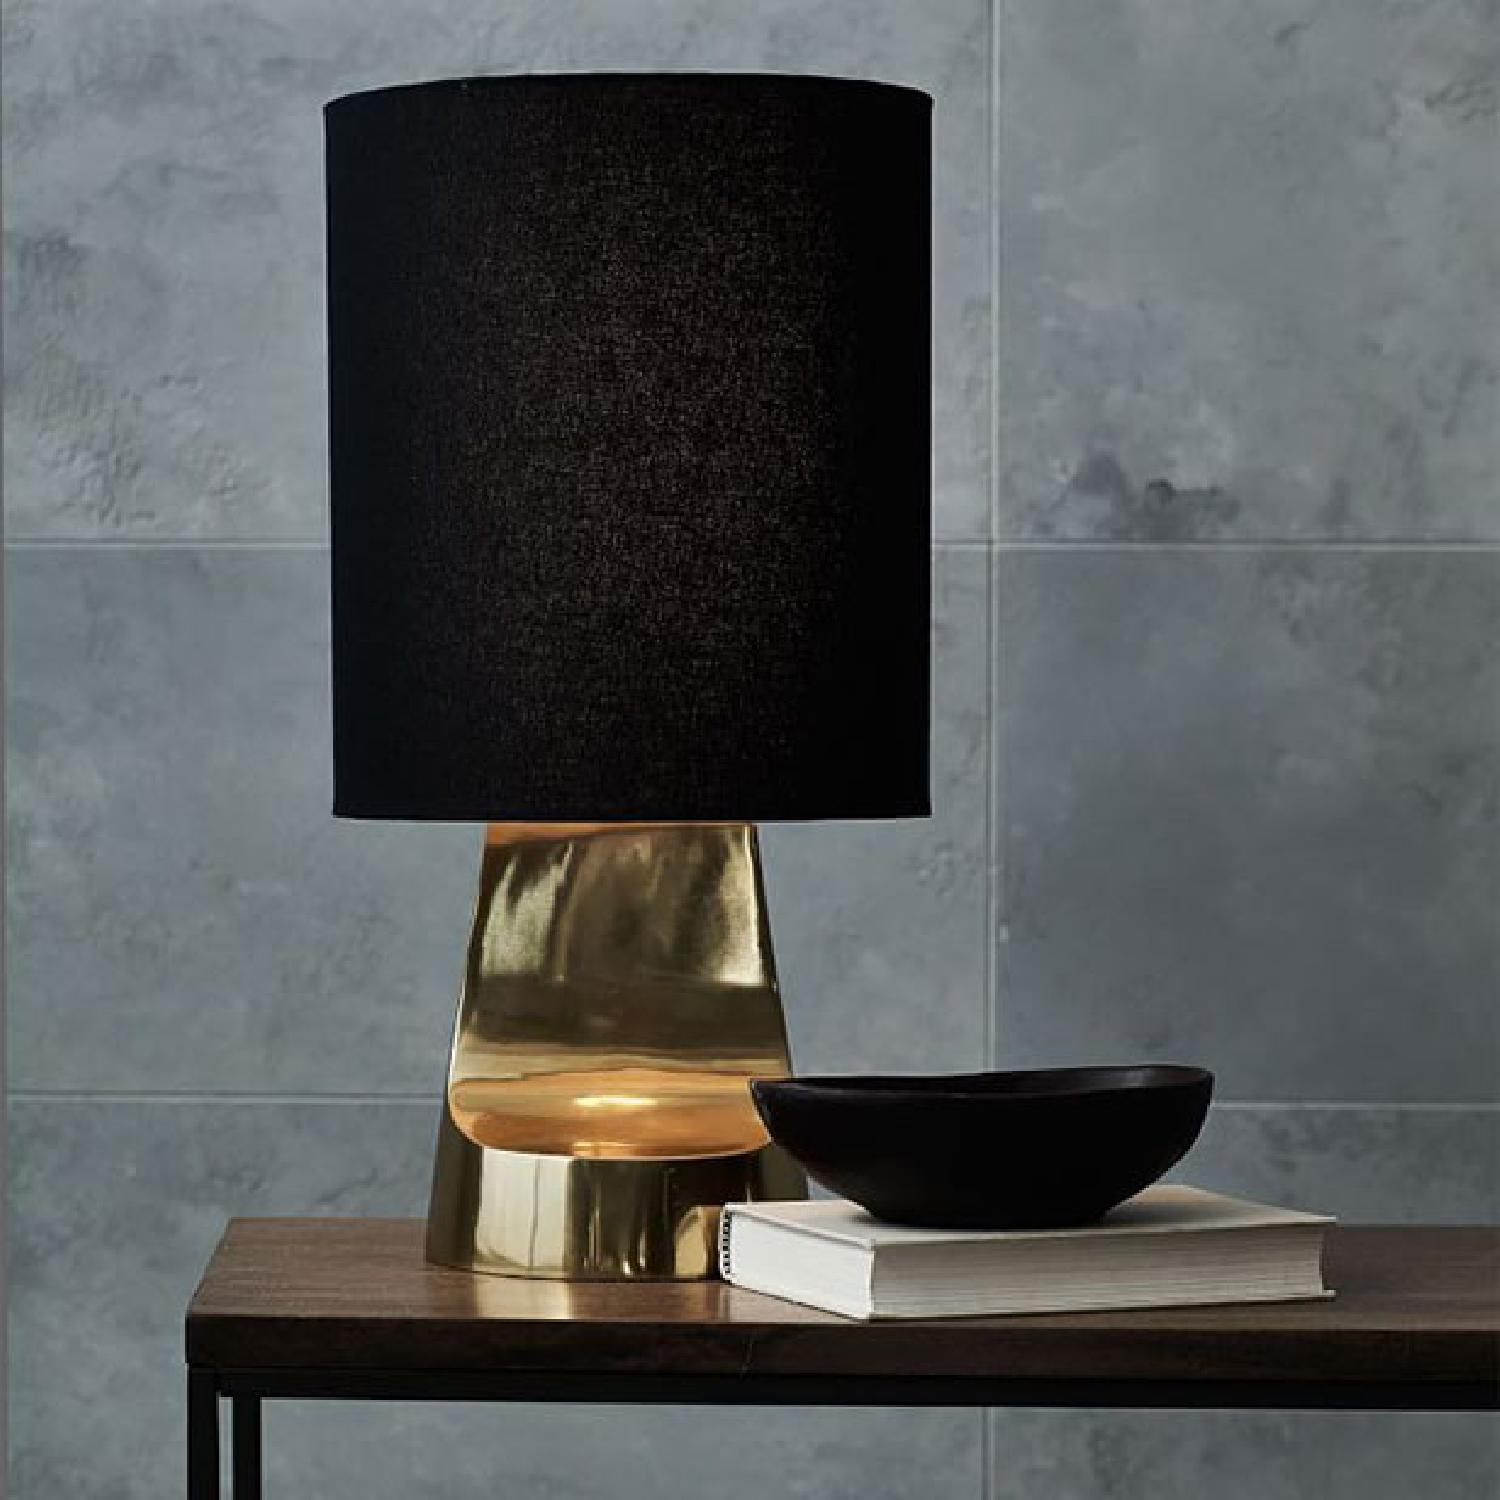 West Elm Small Sculptural Metal Table Lamp - image-1